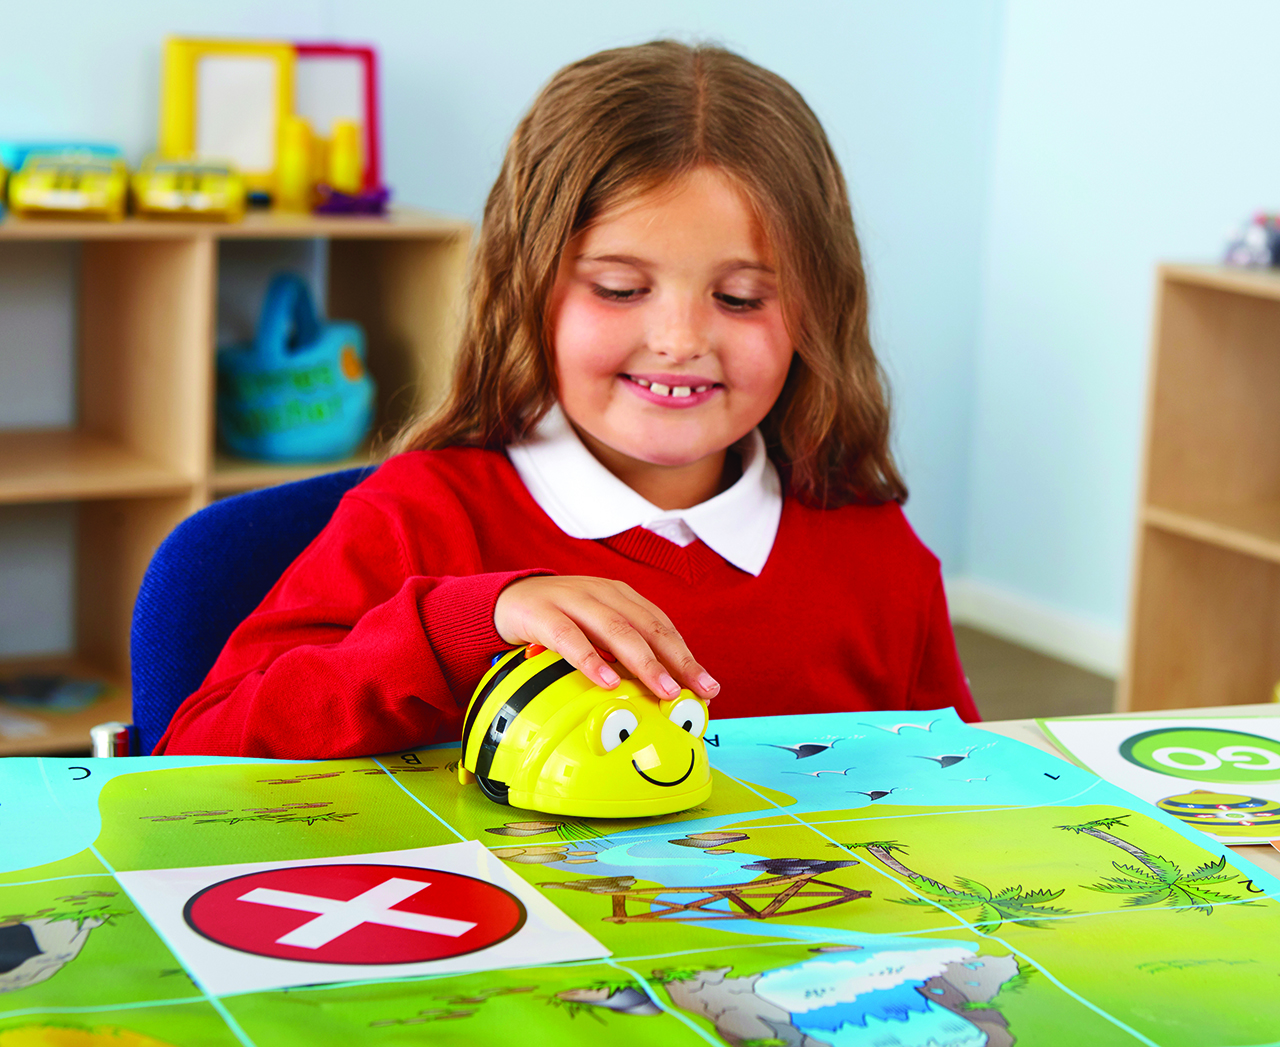 Robotics in the Early Years Classroom